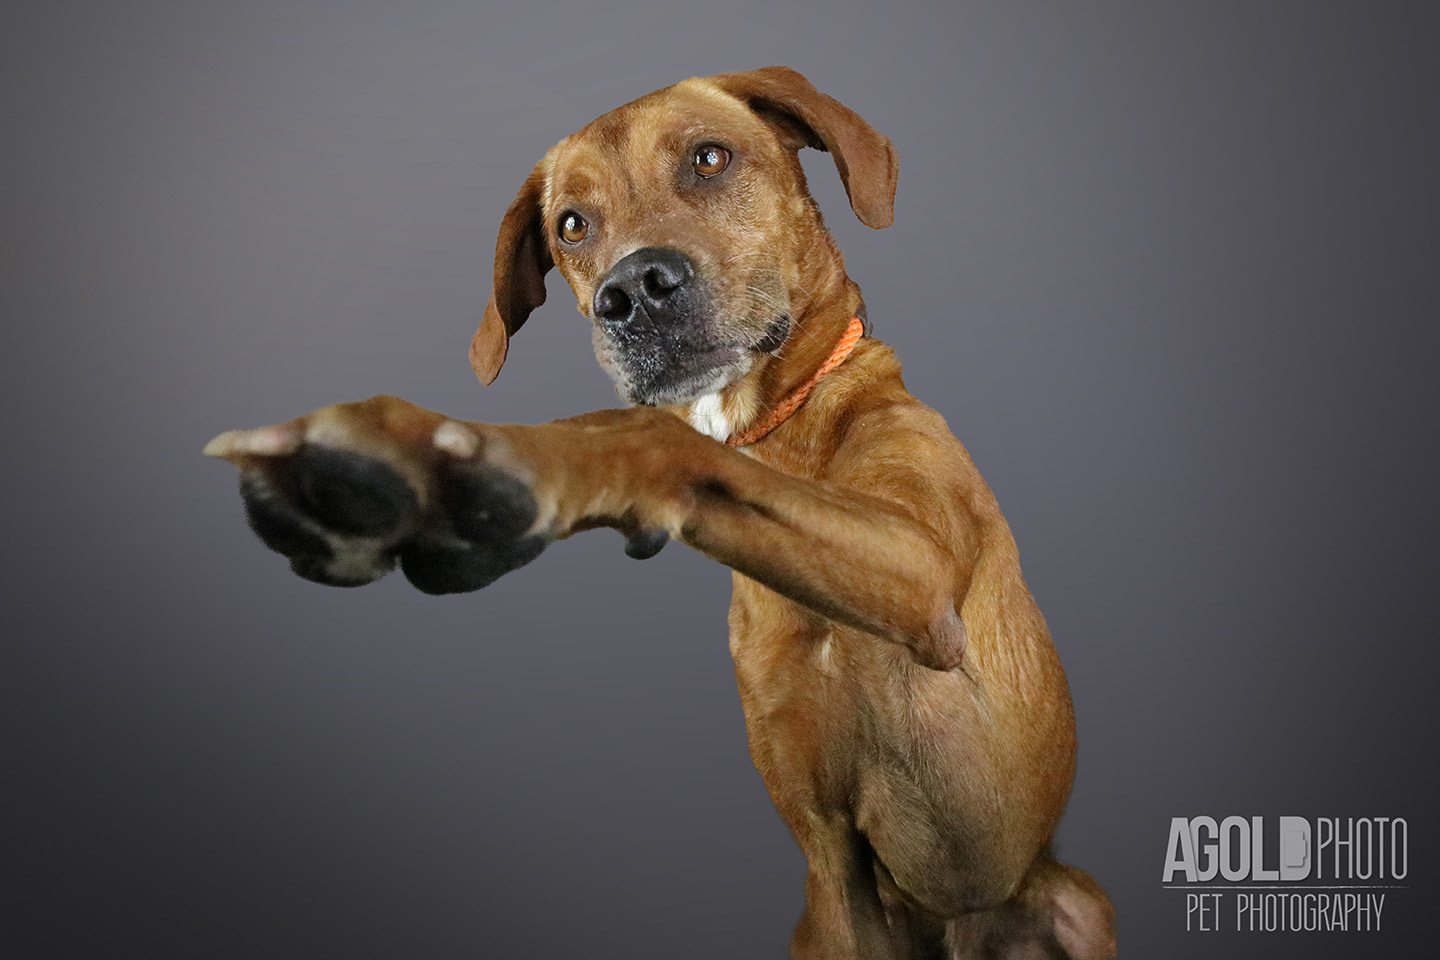 red_agoldphoto-tampa-pet-photography__agoldphoto-tampa-pet-photography_